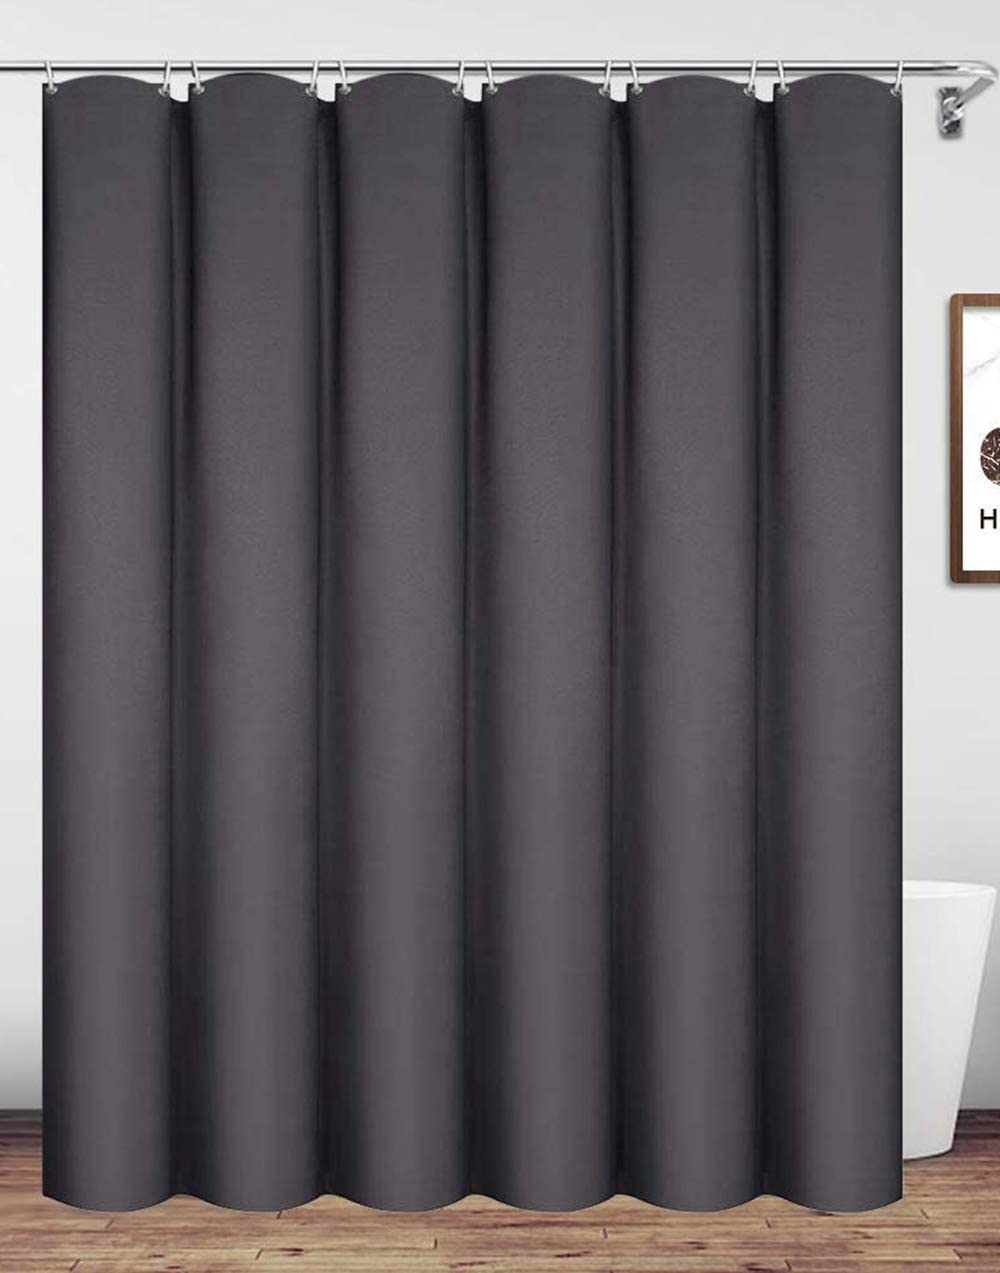 Homehold Charcoal Grey Shower Curtain With Hooks, 180cm Wide By 180cm Long Polyester Waterproof Bathroom Curtain Charcoal Grey 180cm Wide x 180cm High